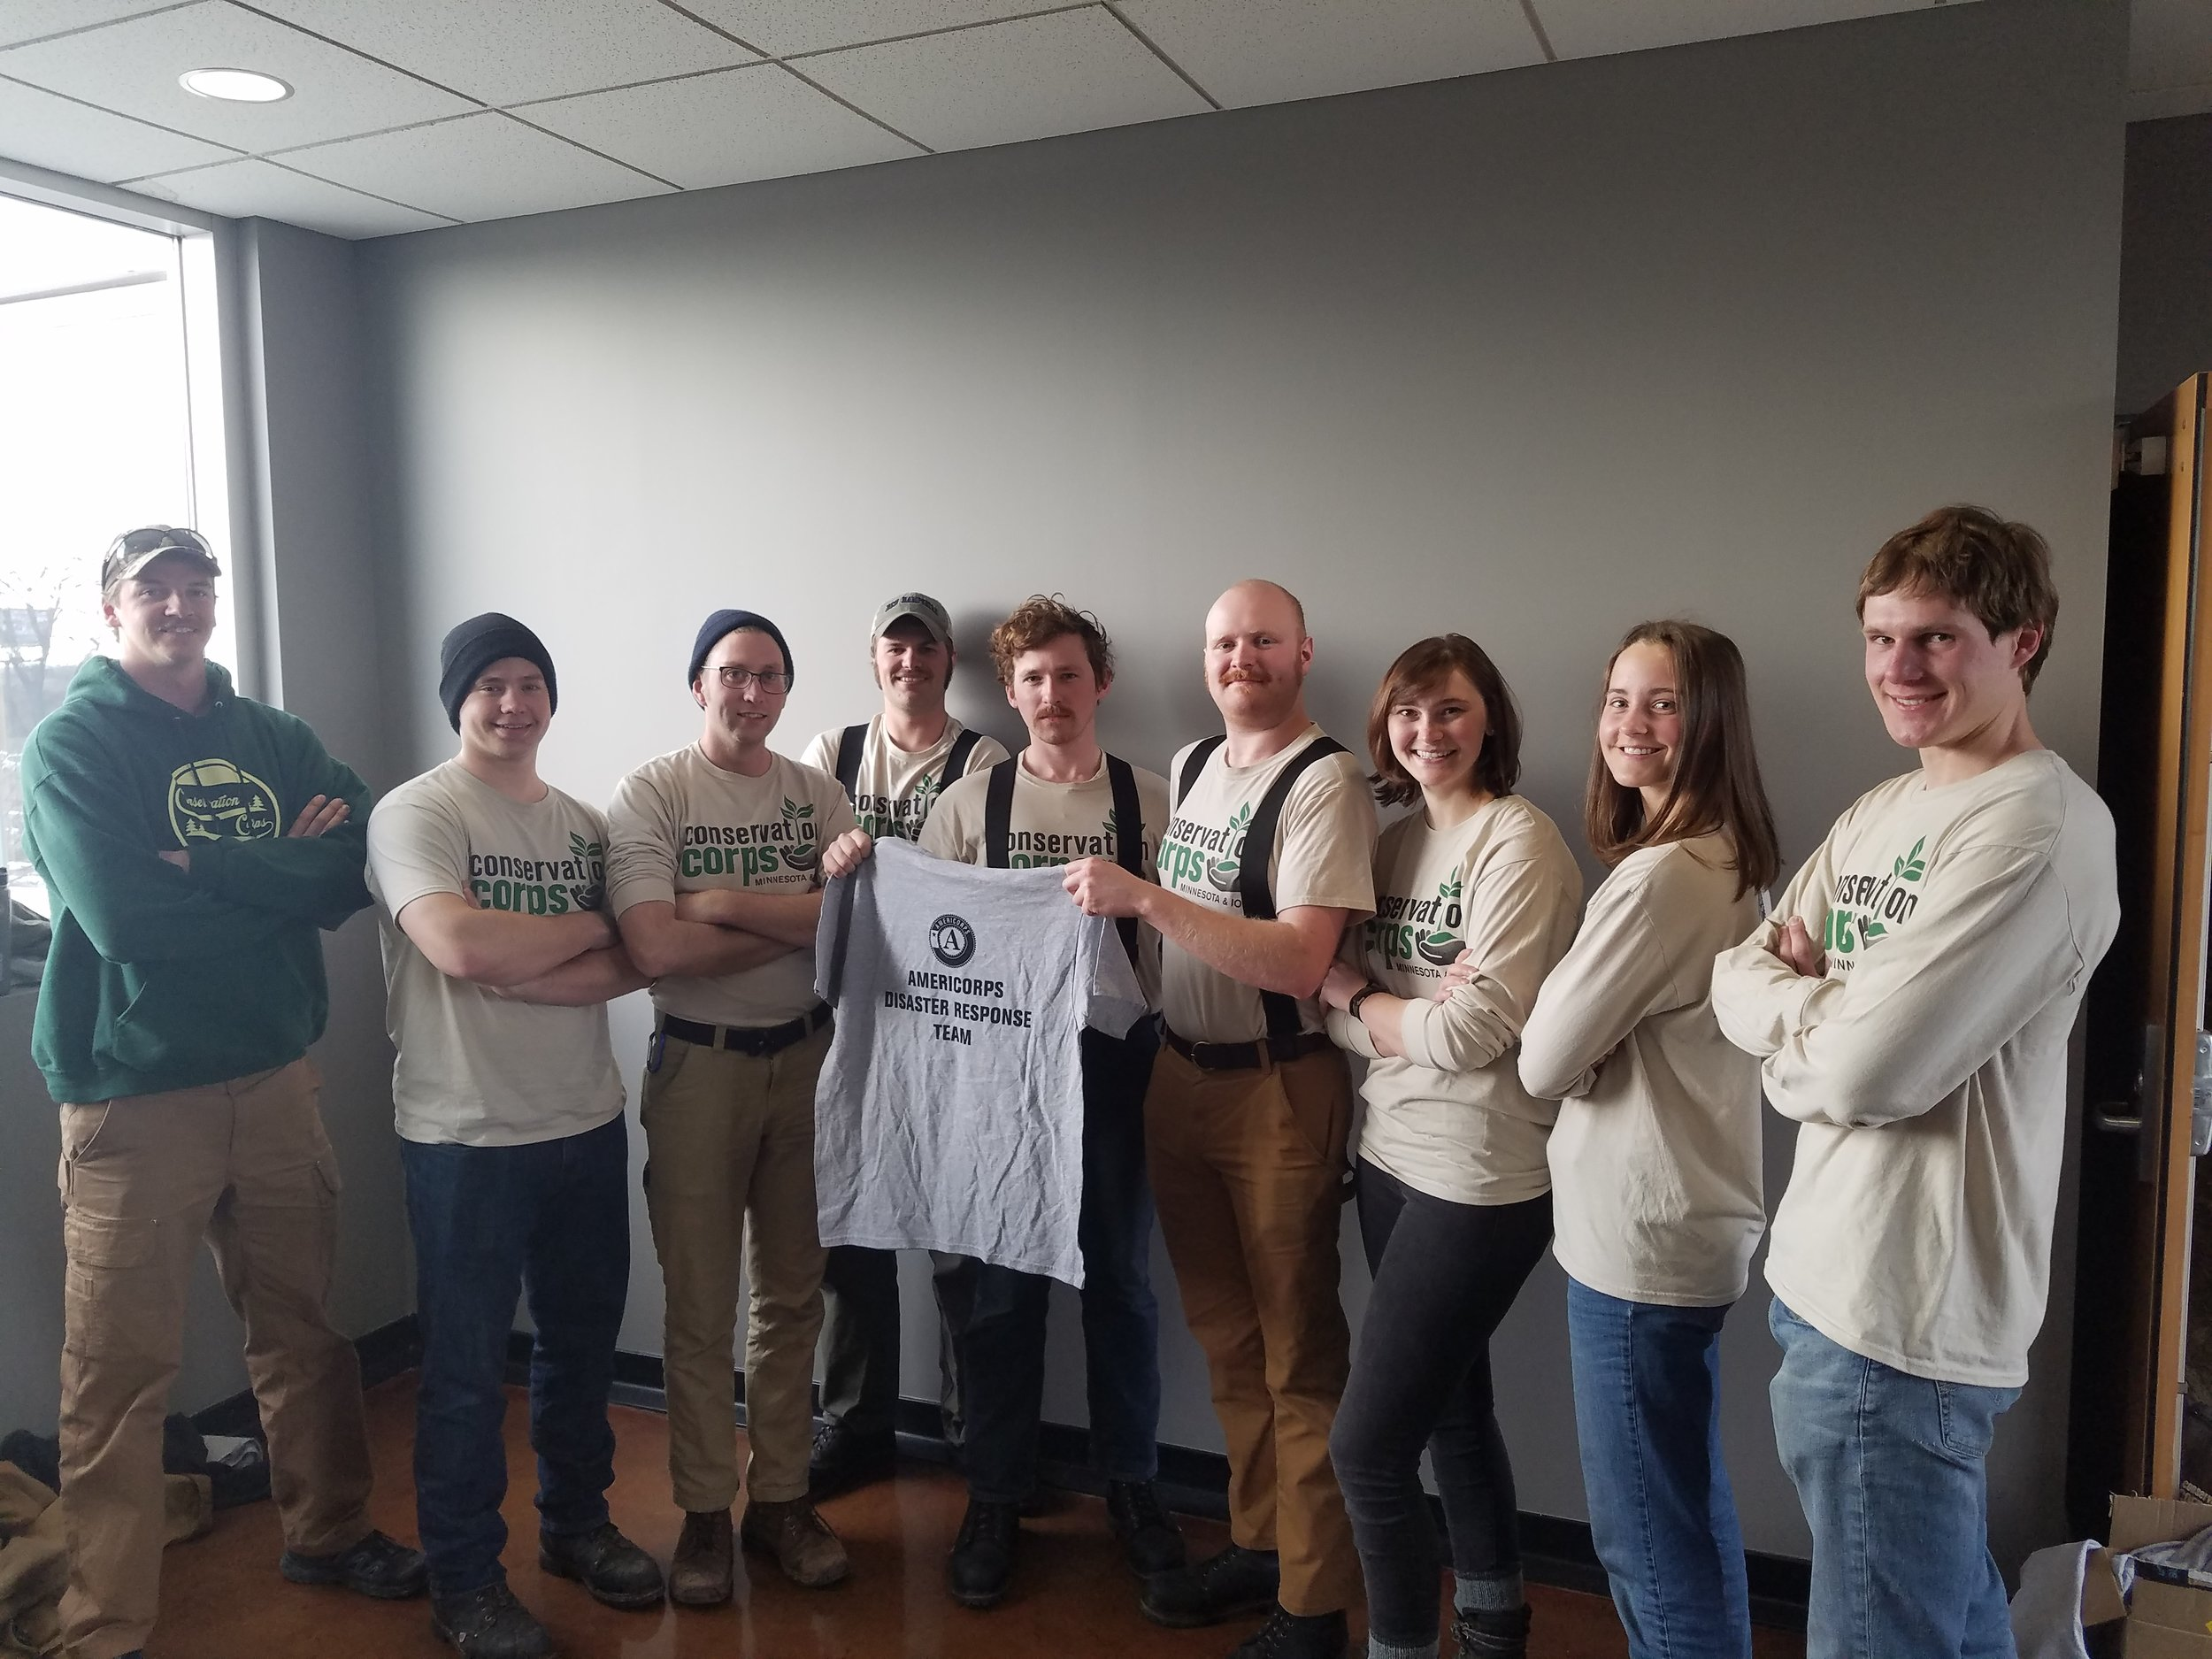 On Friday, April 12, 2019, Conservation Corps Minnesota & Iowa AmeriCorps members departed from Saint Paul, Minnesota to join additional members in Iowa for a 30-day flooding disaster recovery deployment.